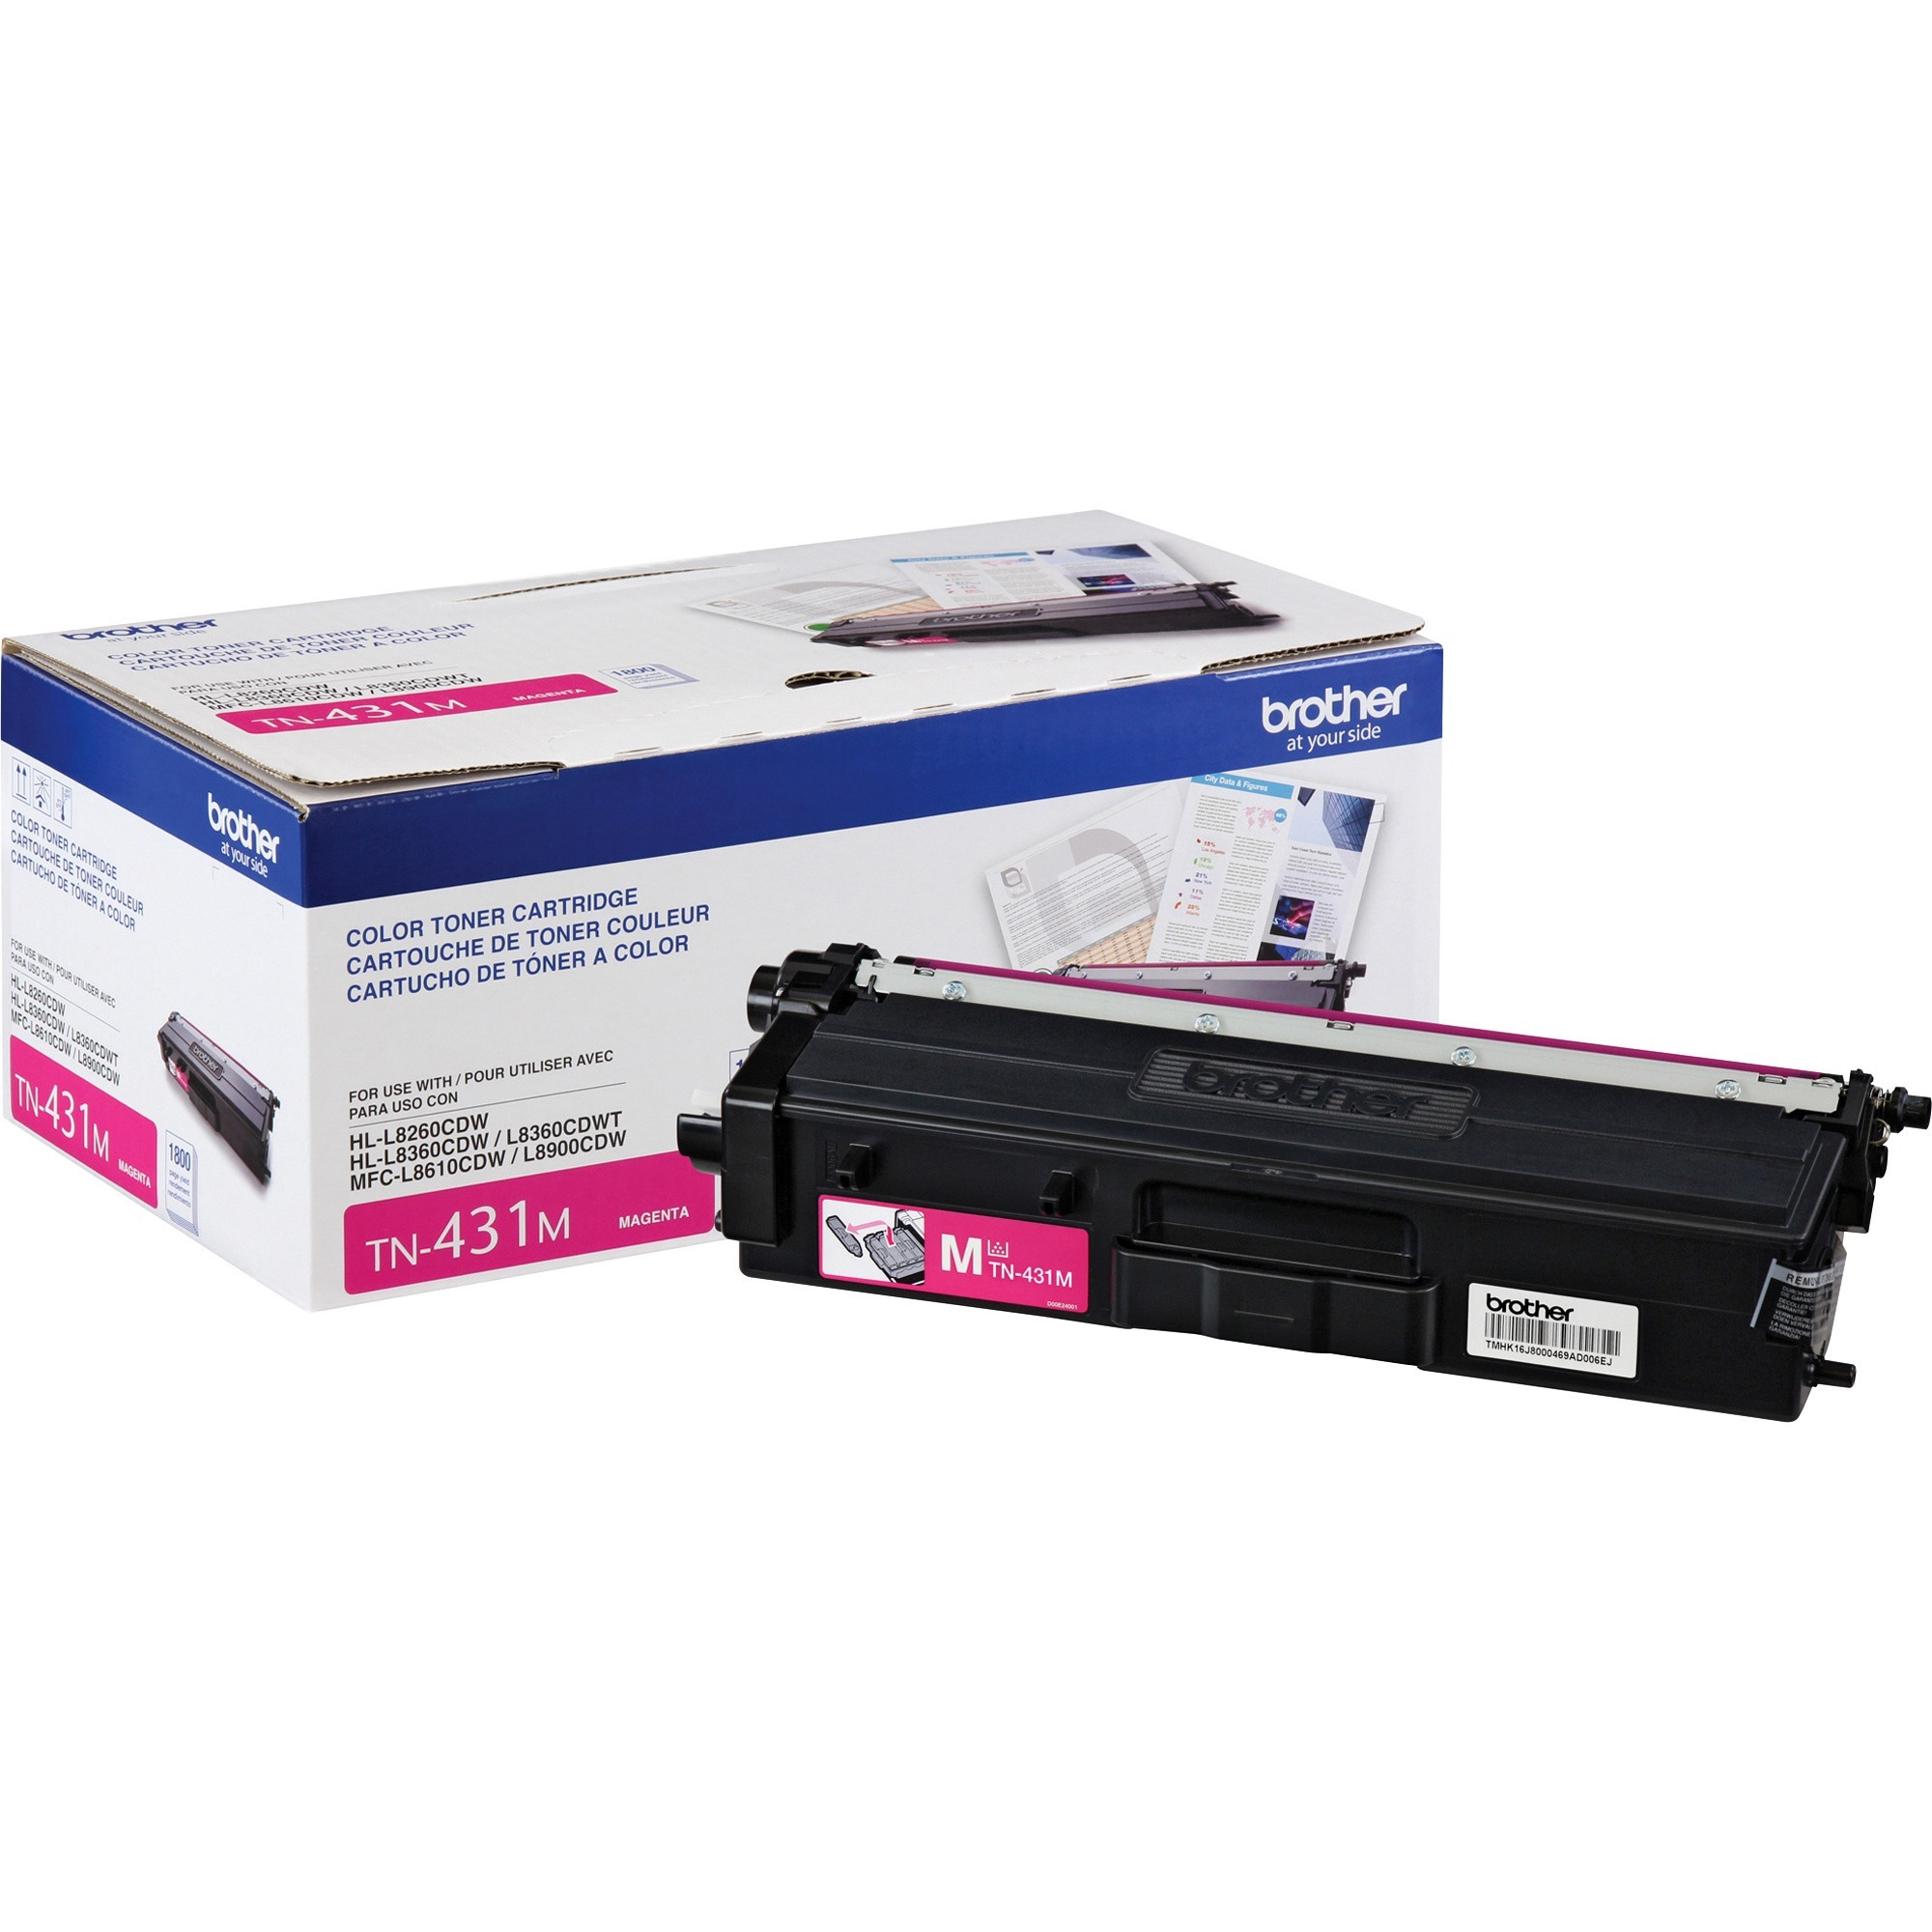 Brother, BRTTN431M, TN431M Toner Cartridge, 1 Each